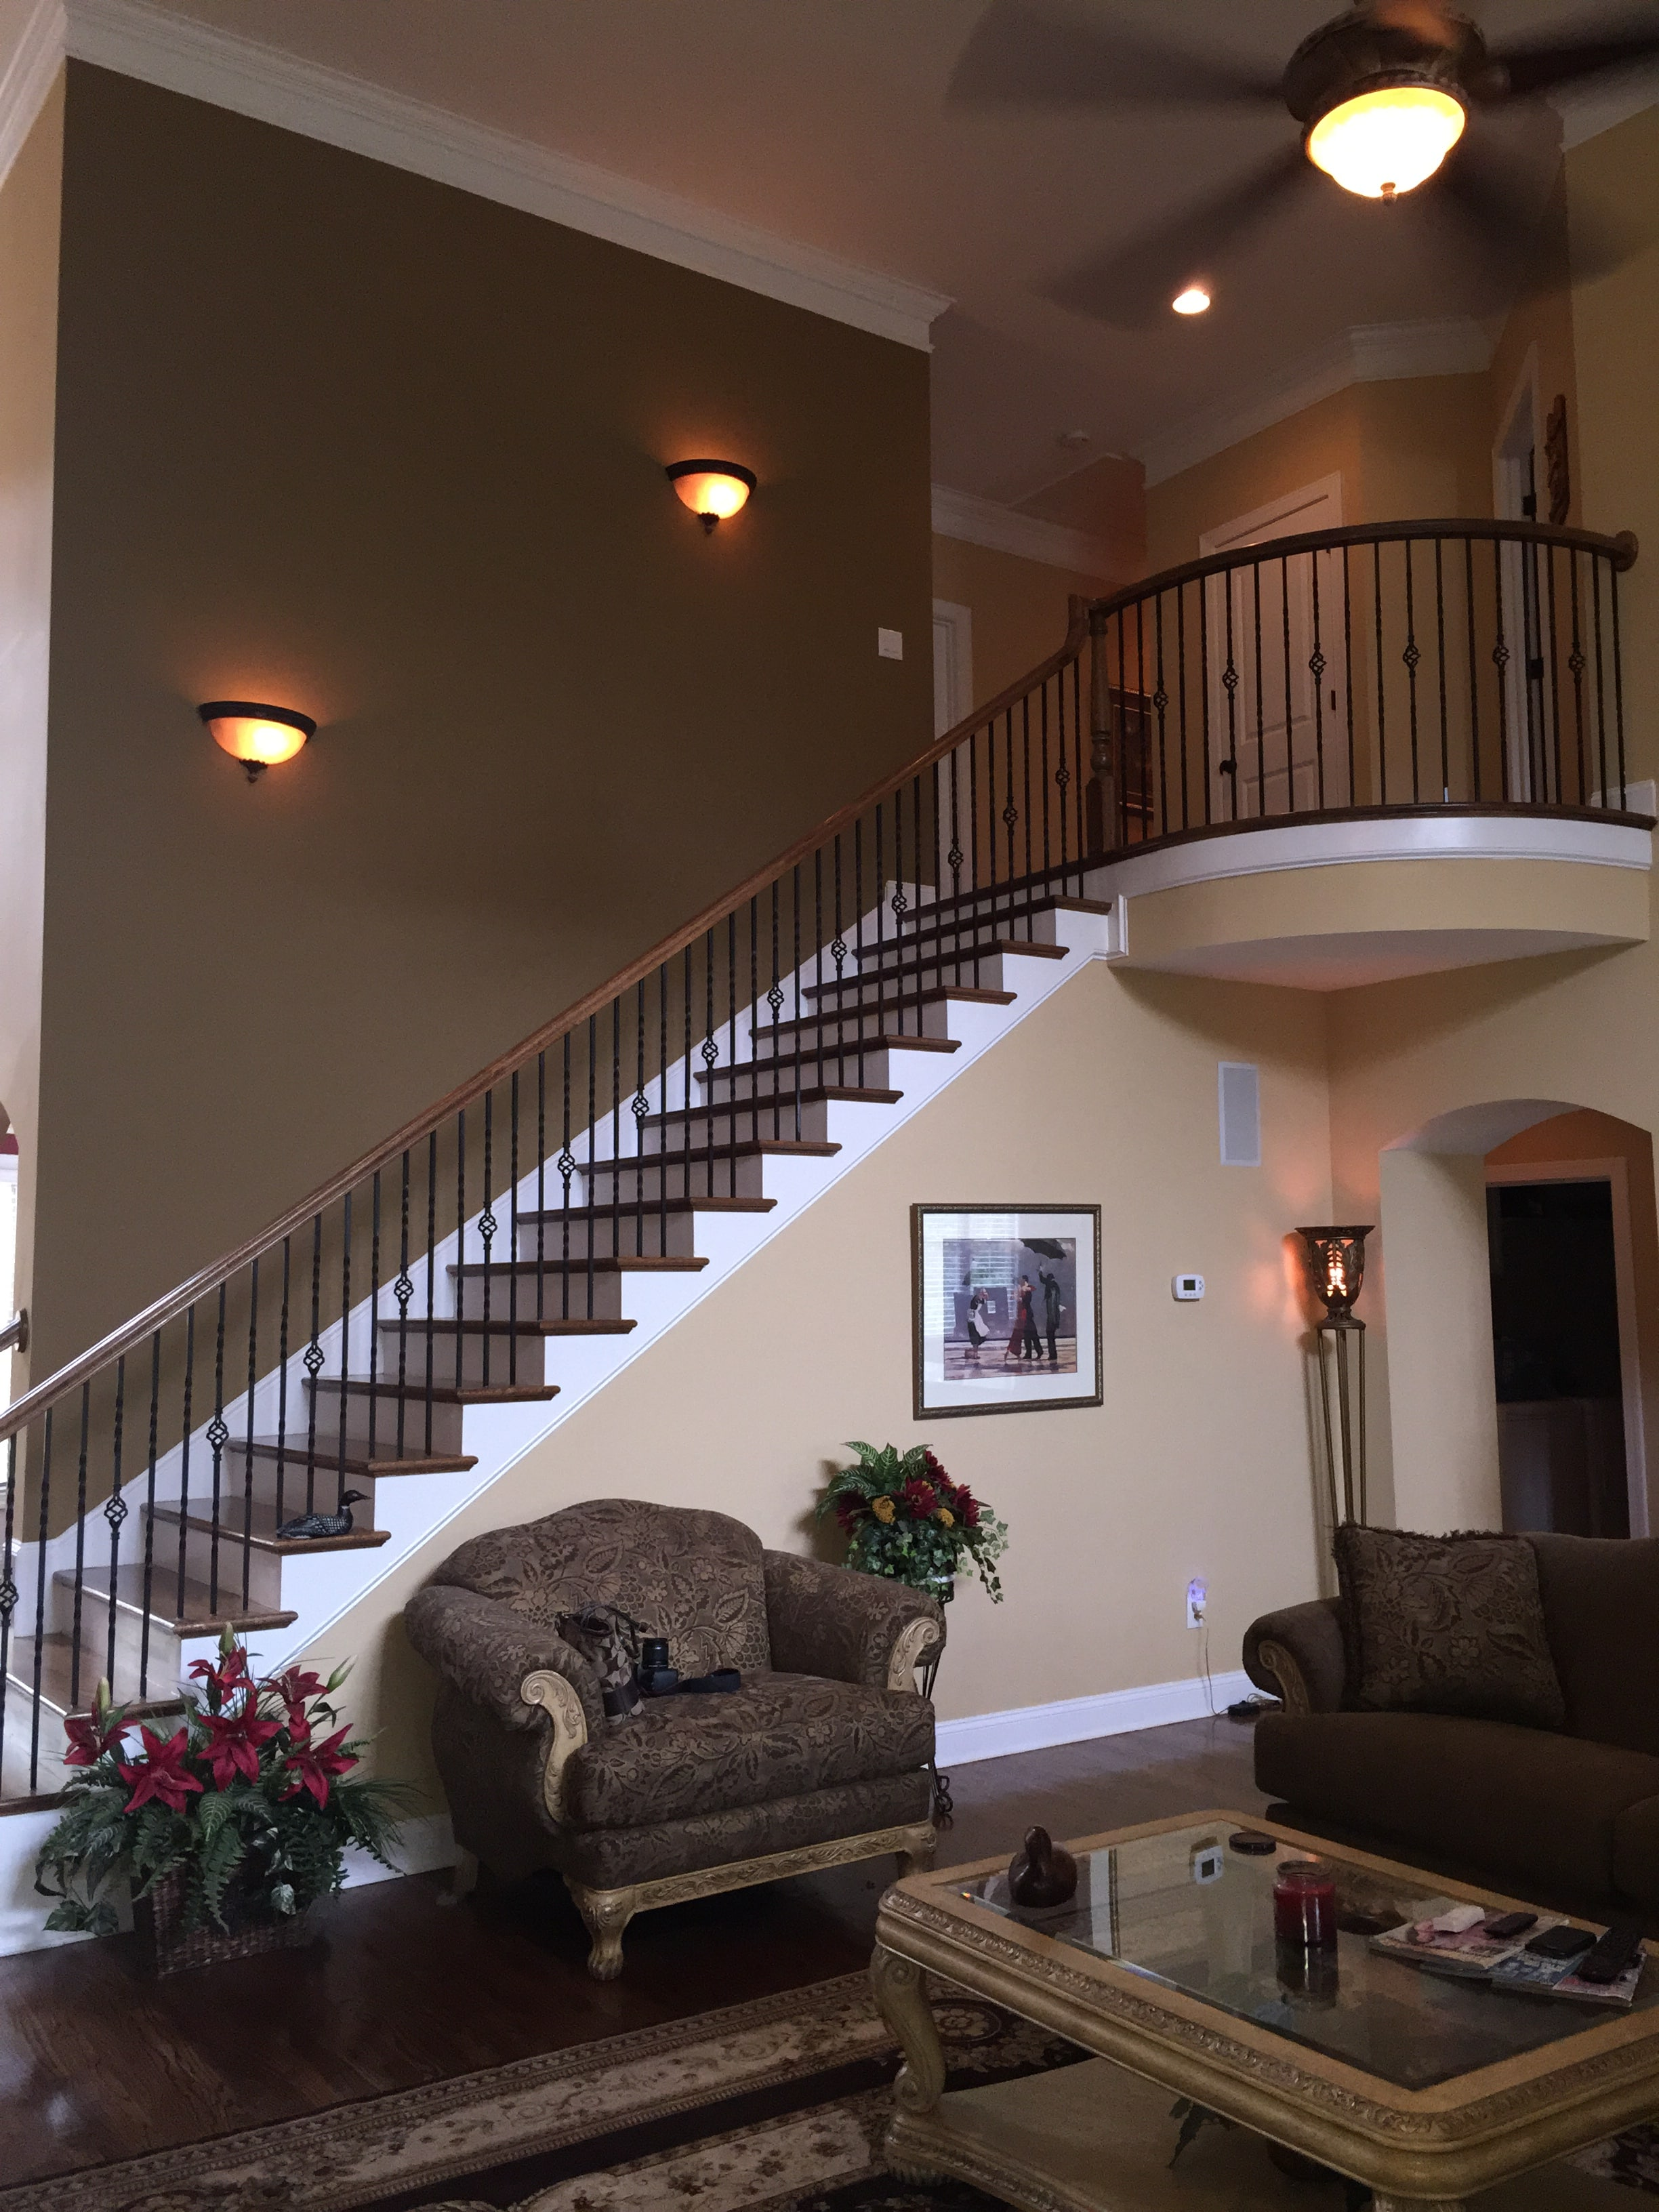 Living room with gorgeous staircase.